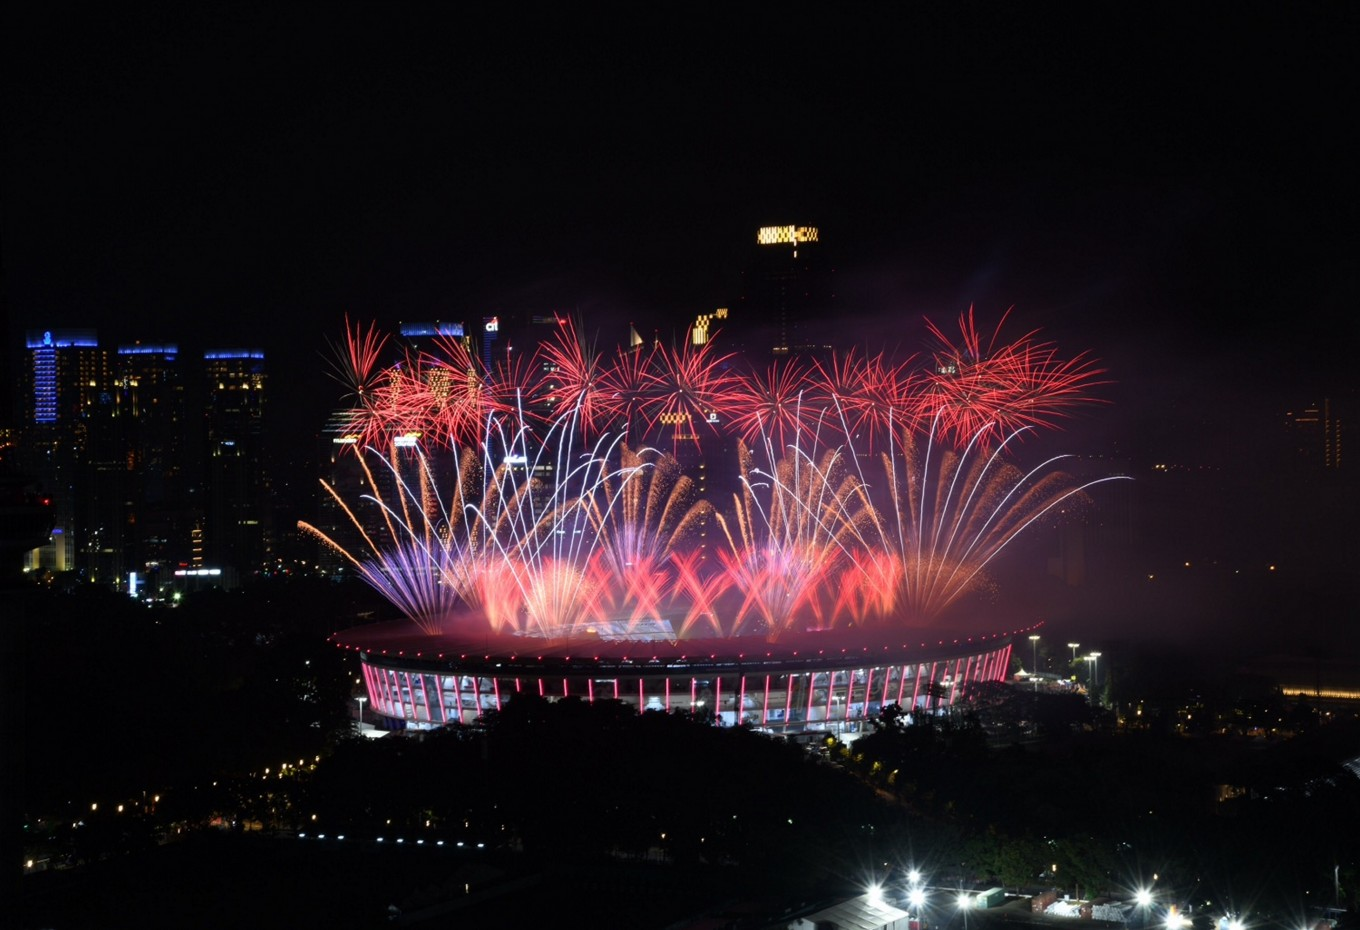 Indonesia denies reports on Jakarta's air pollution during Asian Games